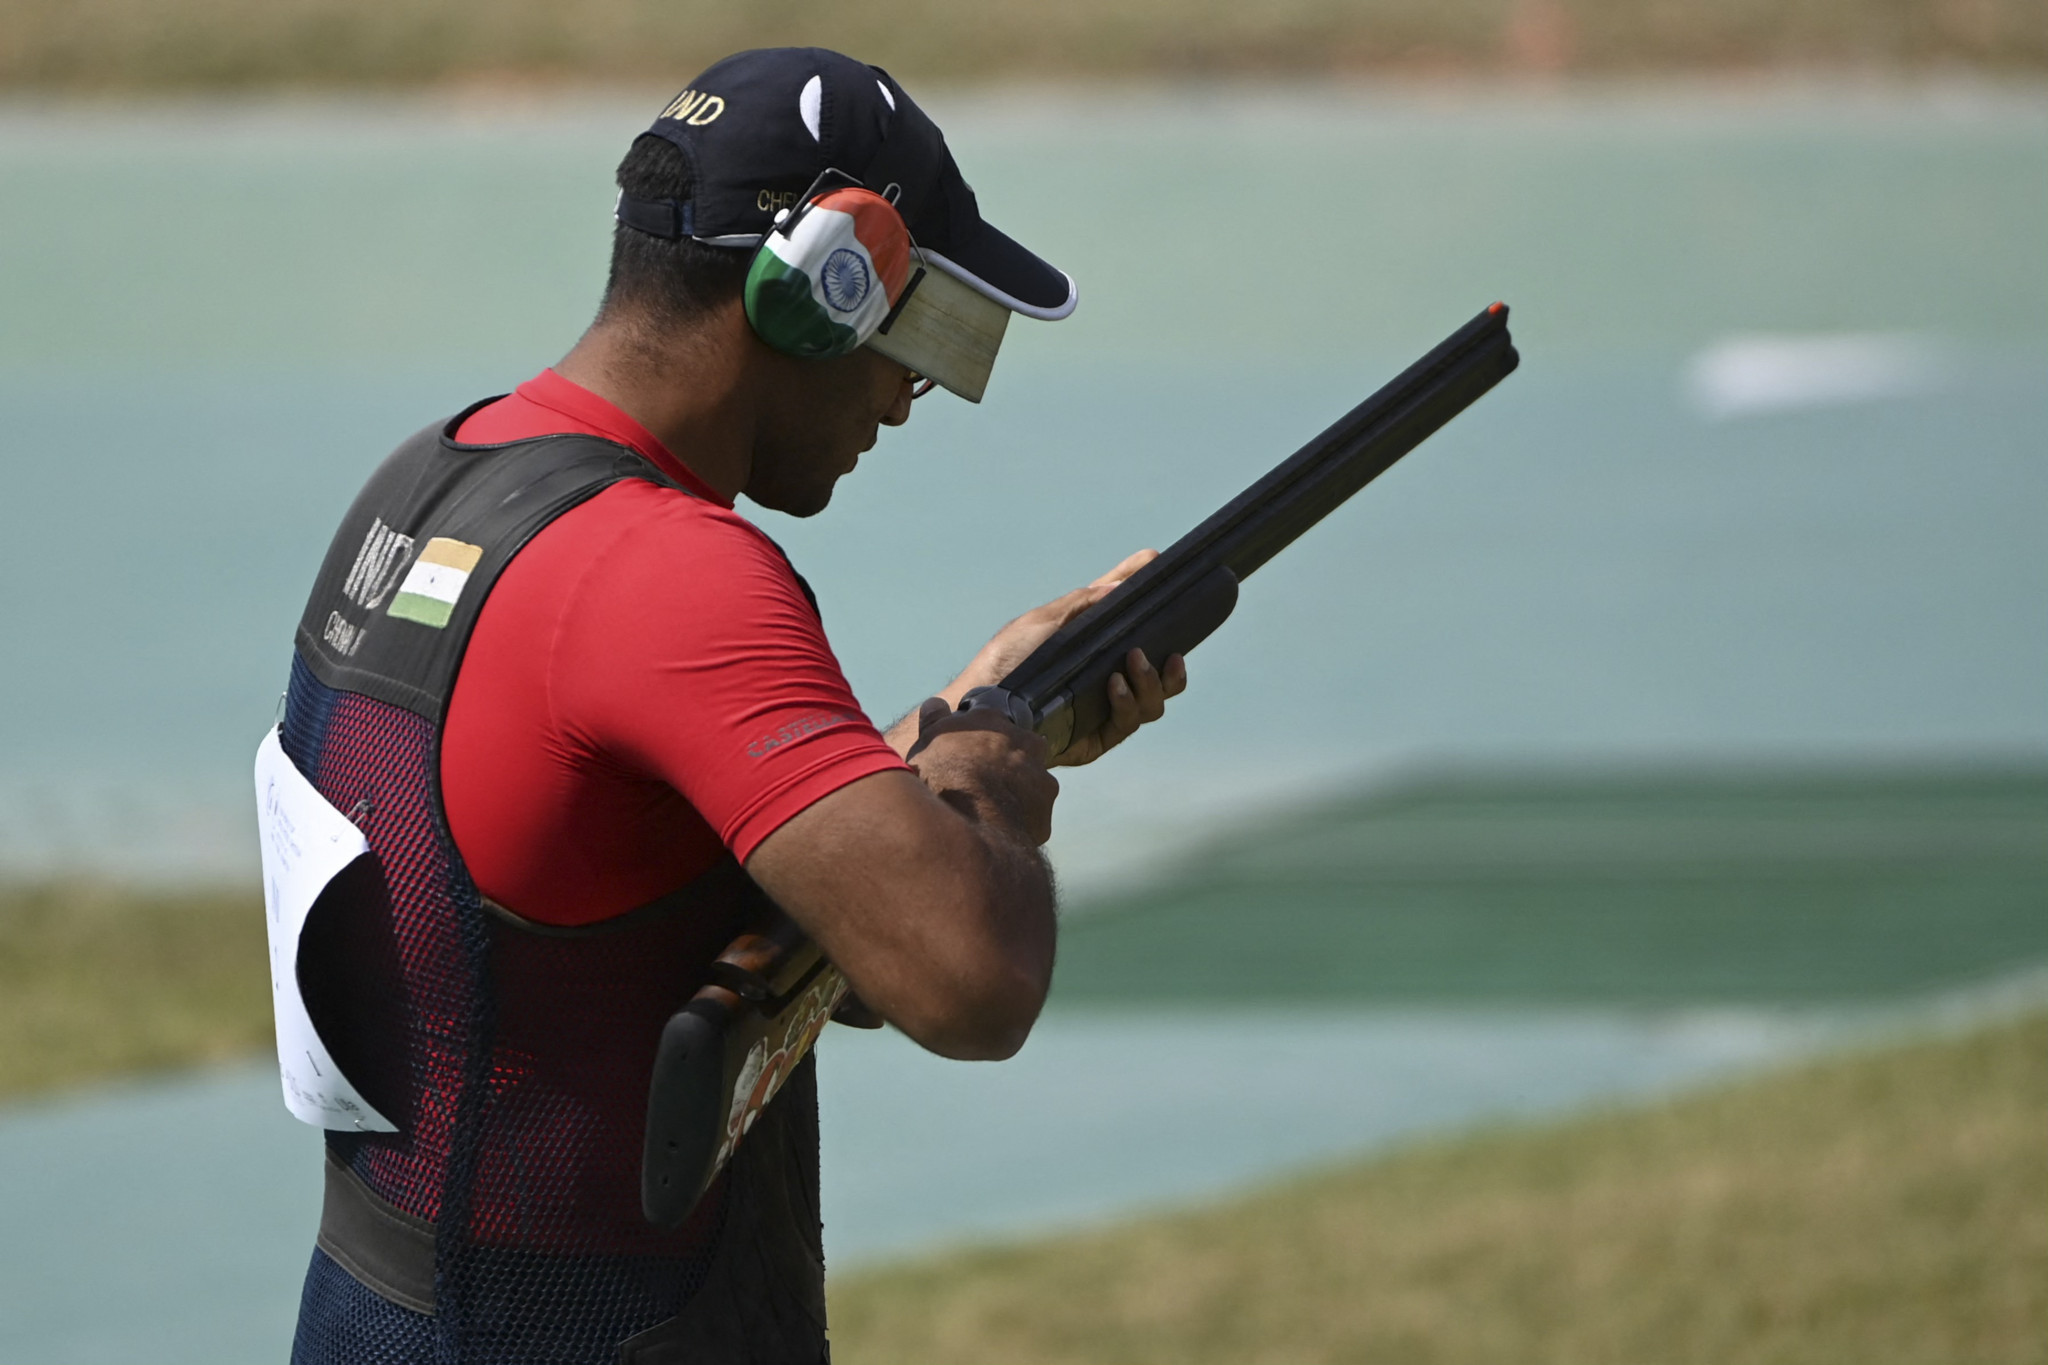 IOA hopes to discuss Commonwealth Archery and Shooting Championships amid uncertainty